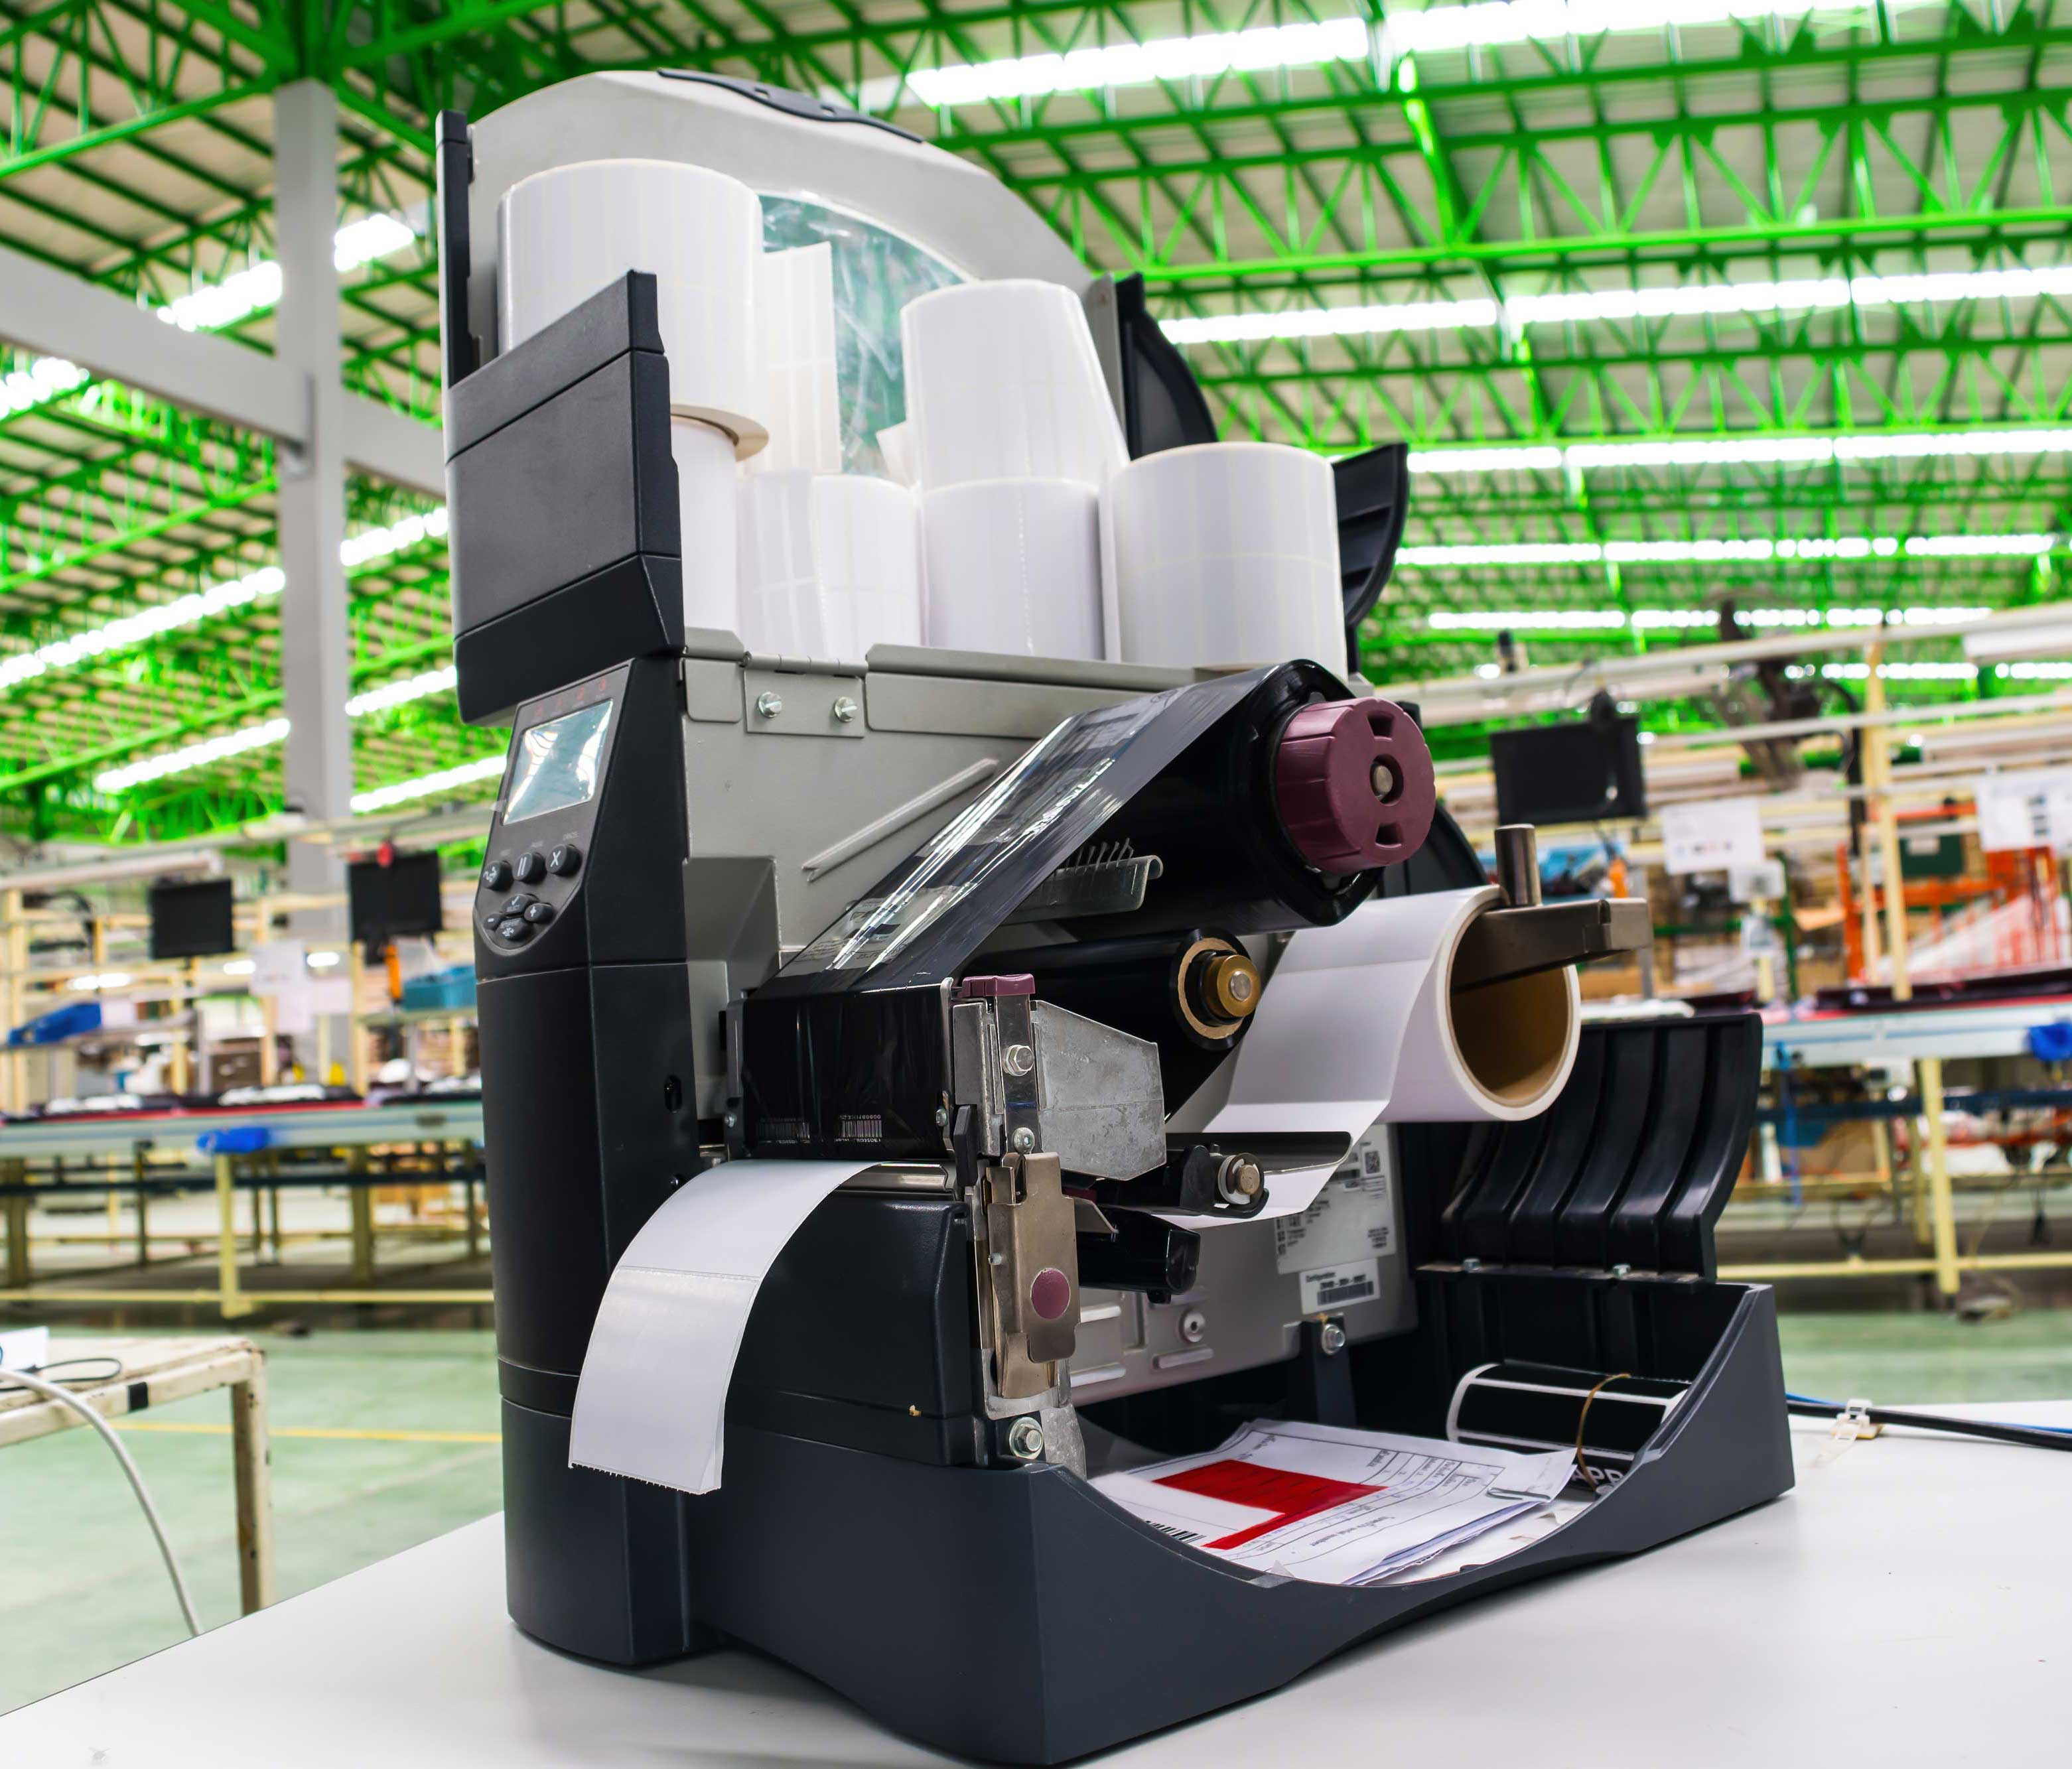 Thermal Printer Technical Support